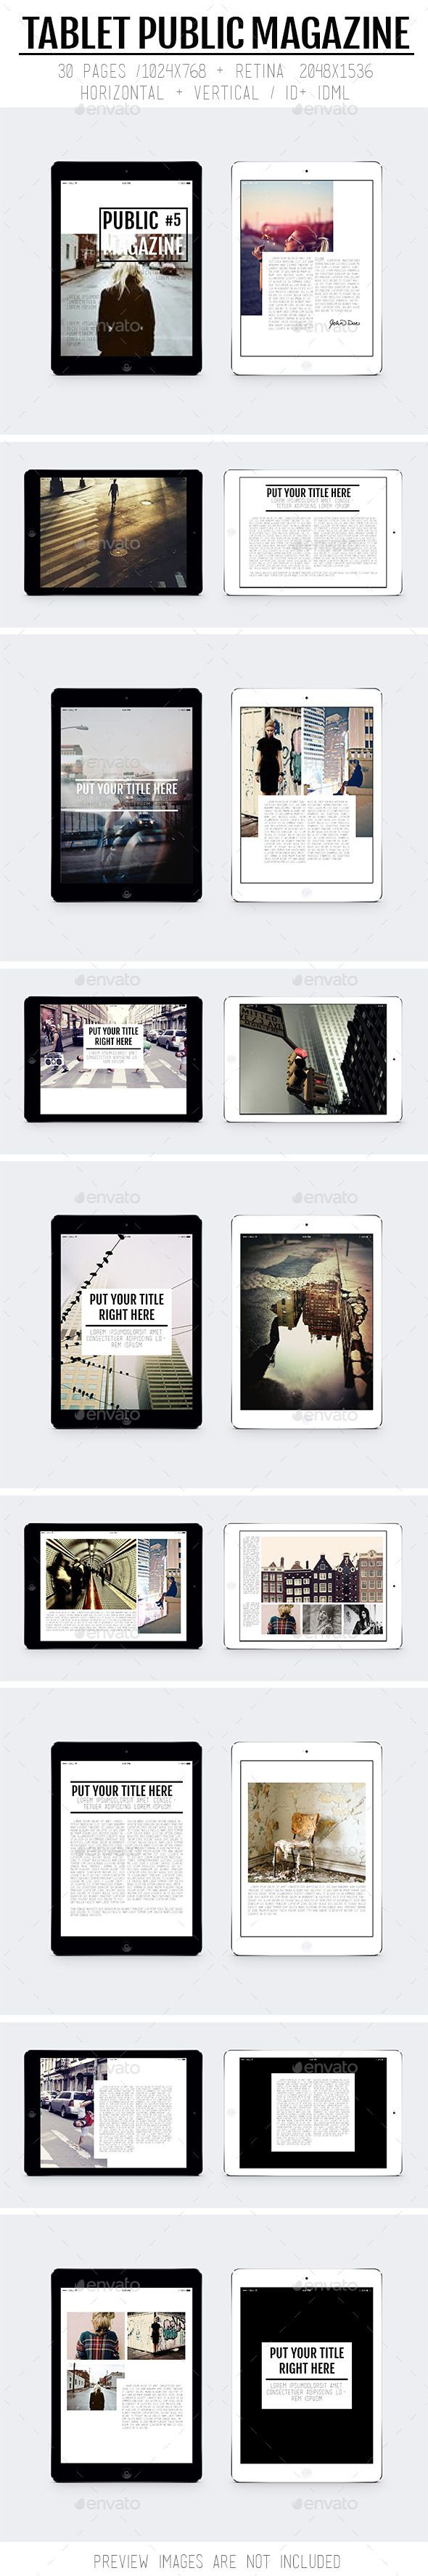 Tablet Public Magazine Template #design Download: http://graphicriver.net/item/tablet-public-magazine/9870326?ref=ksioks